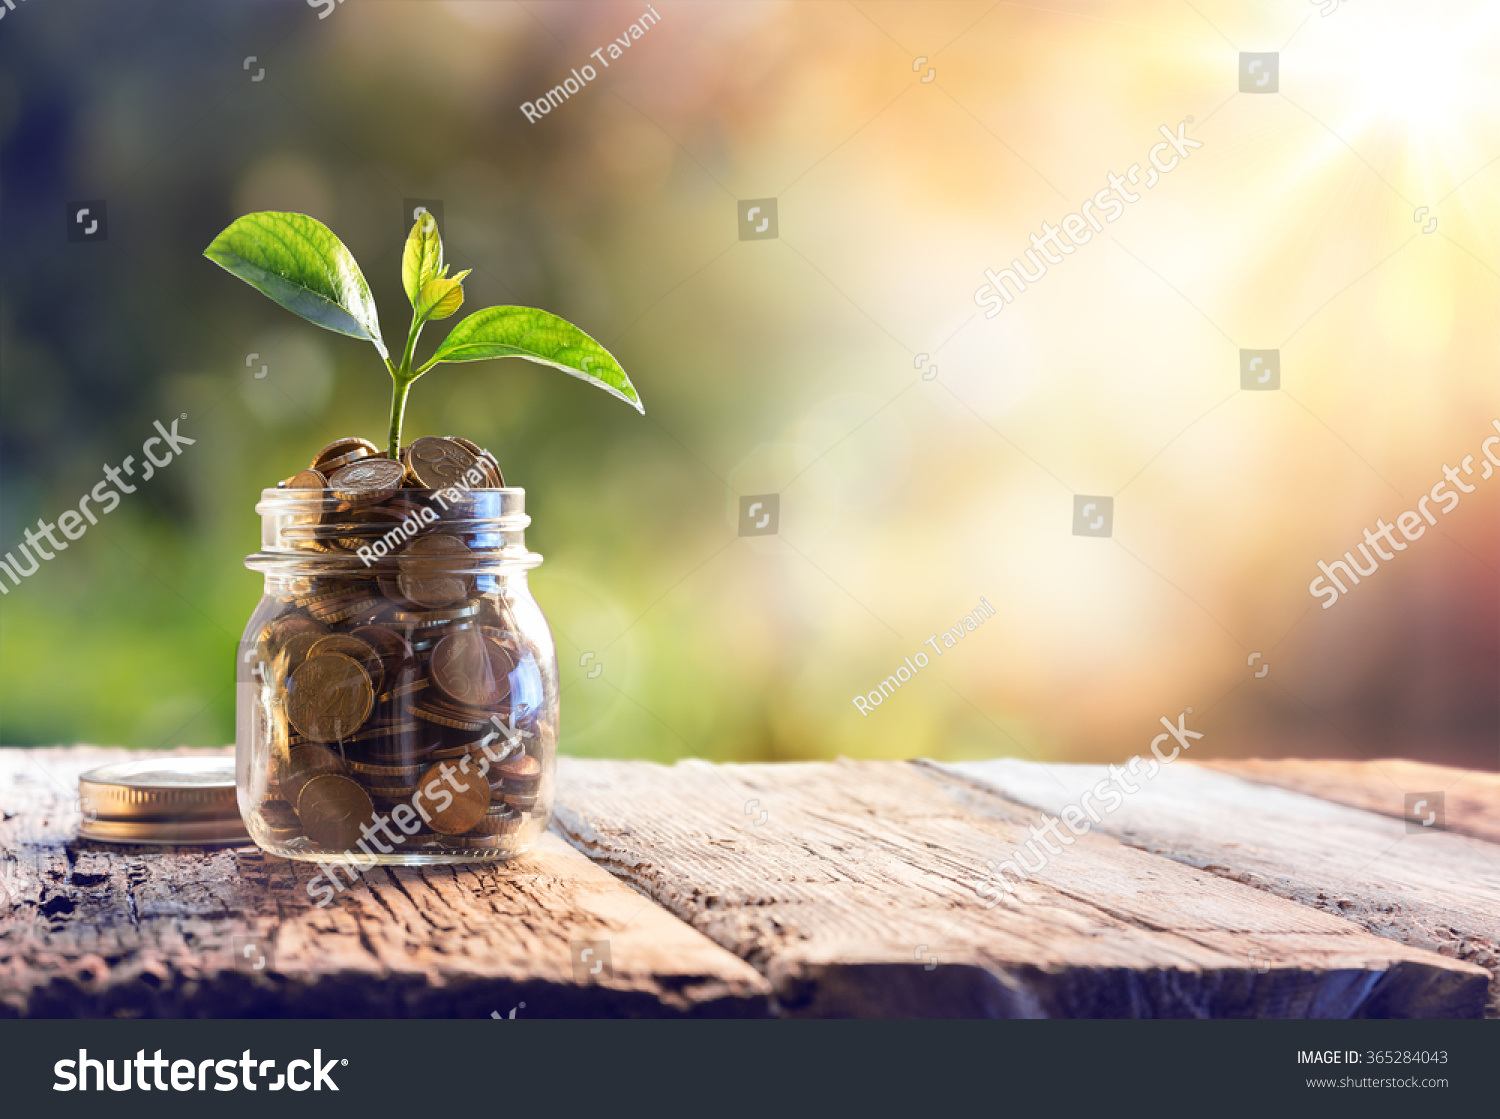 Plant Growing In Savings Coins - Investment And Interest Concept  #365284043